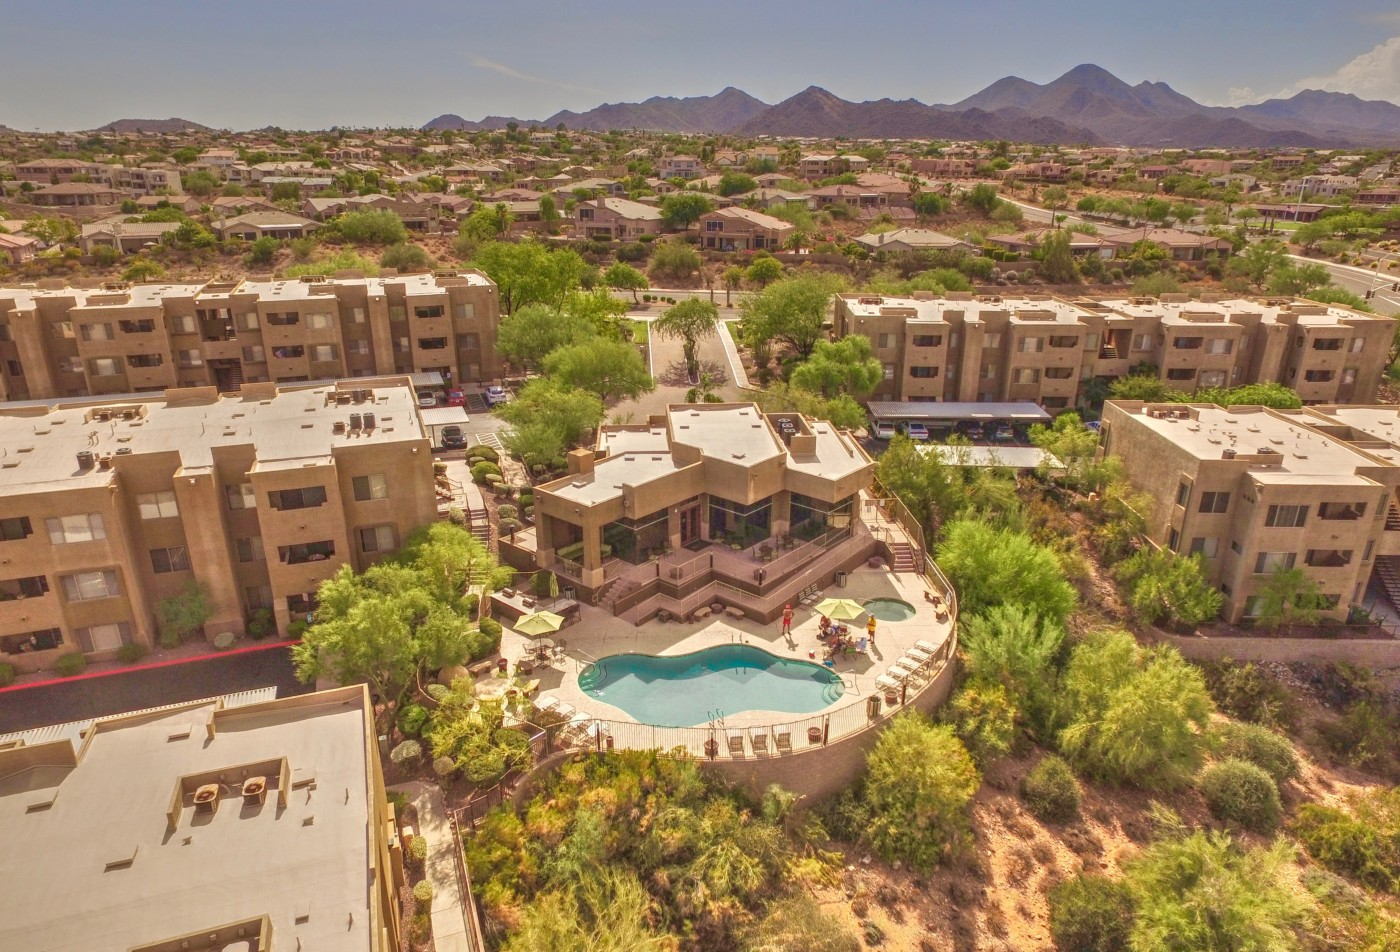 Ridge View Apartments Fountain Hills, AZ aerial view pool exterior and landscaping